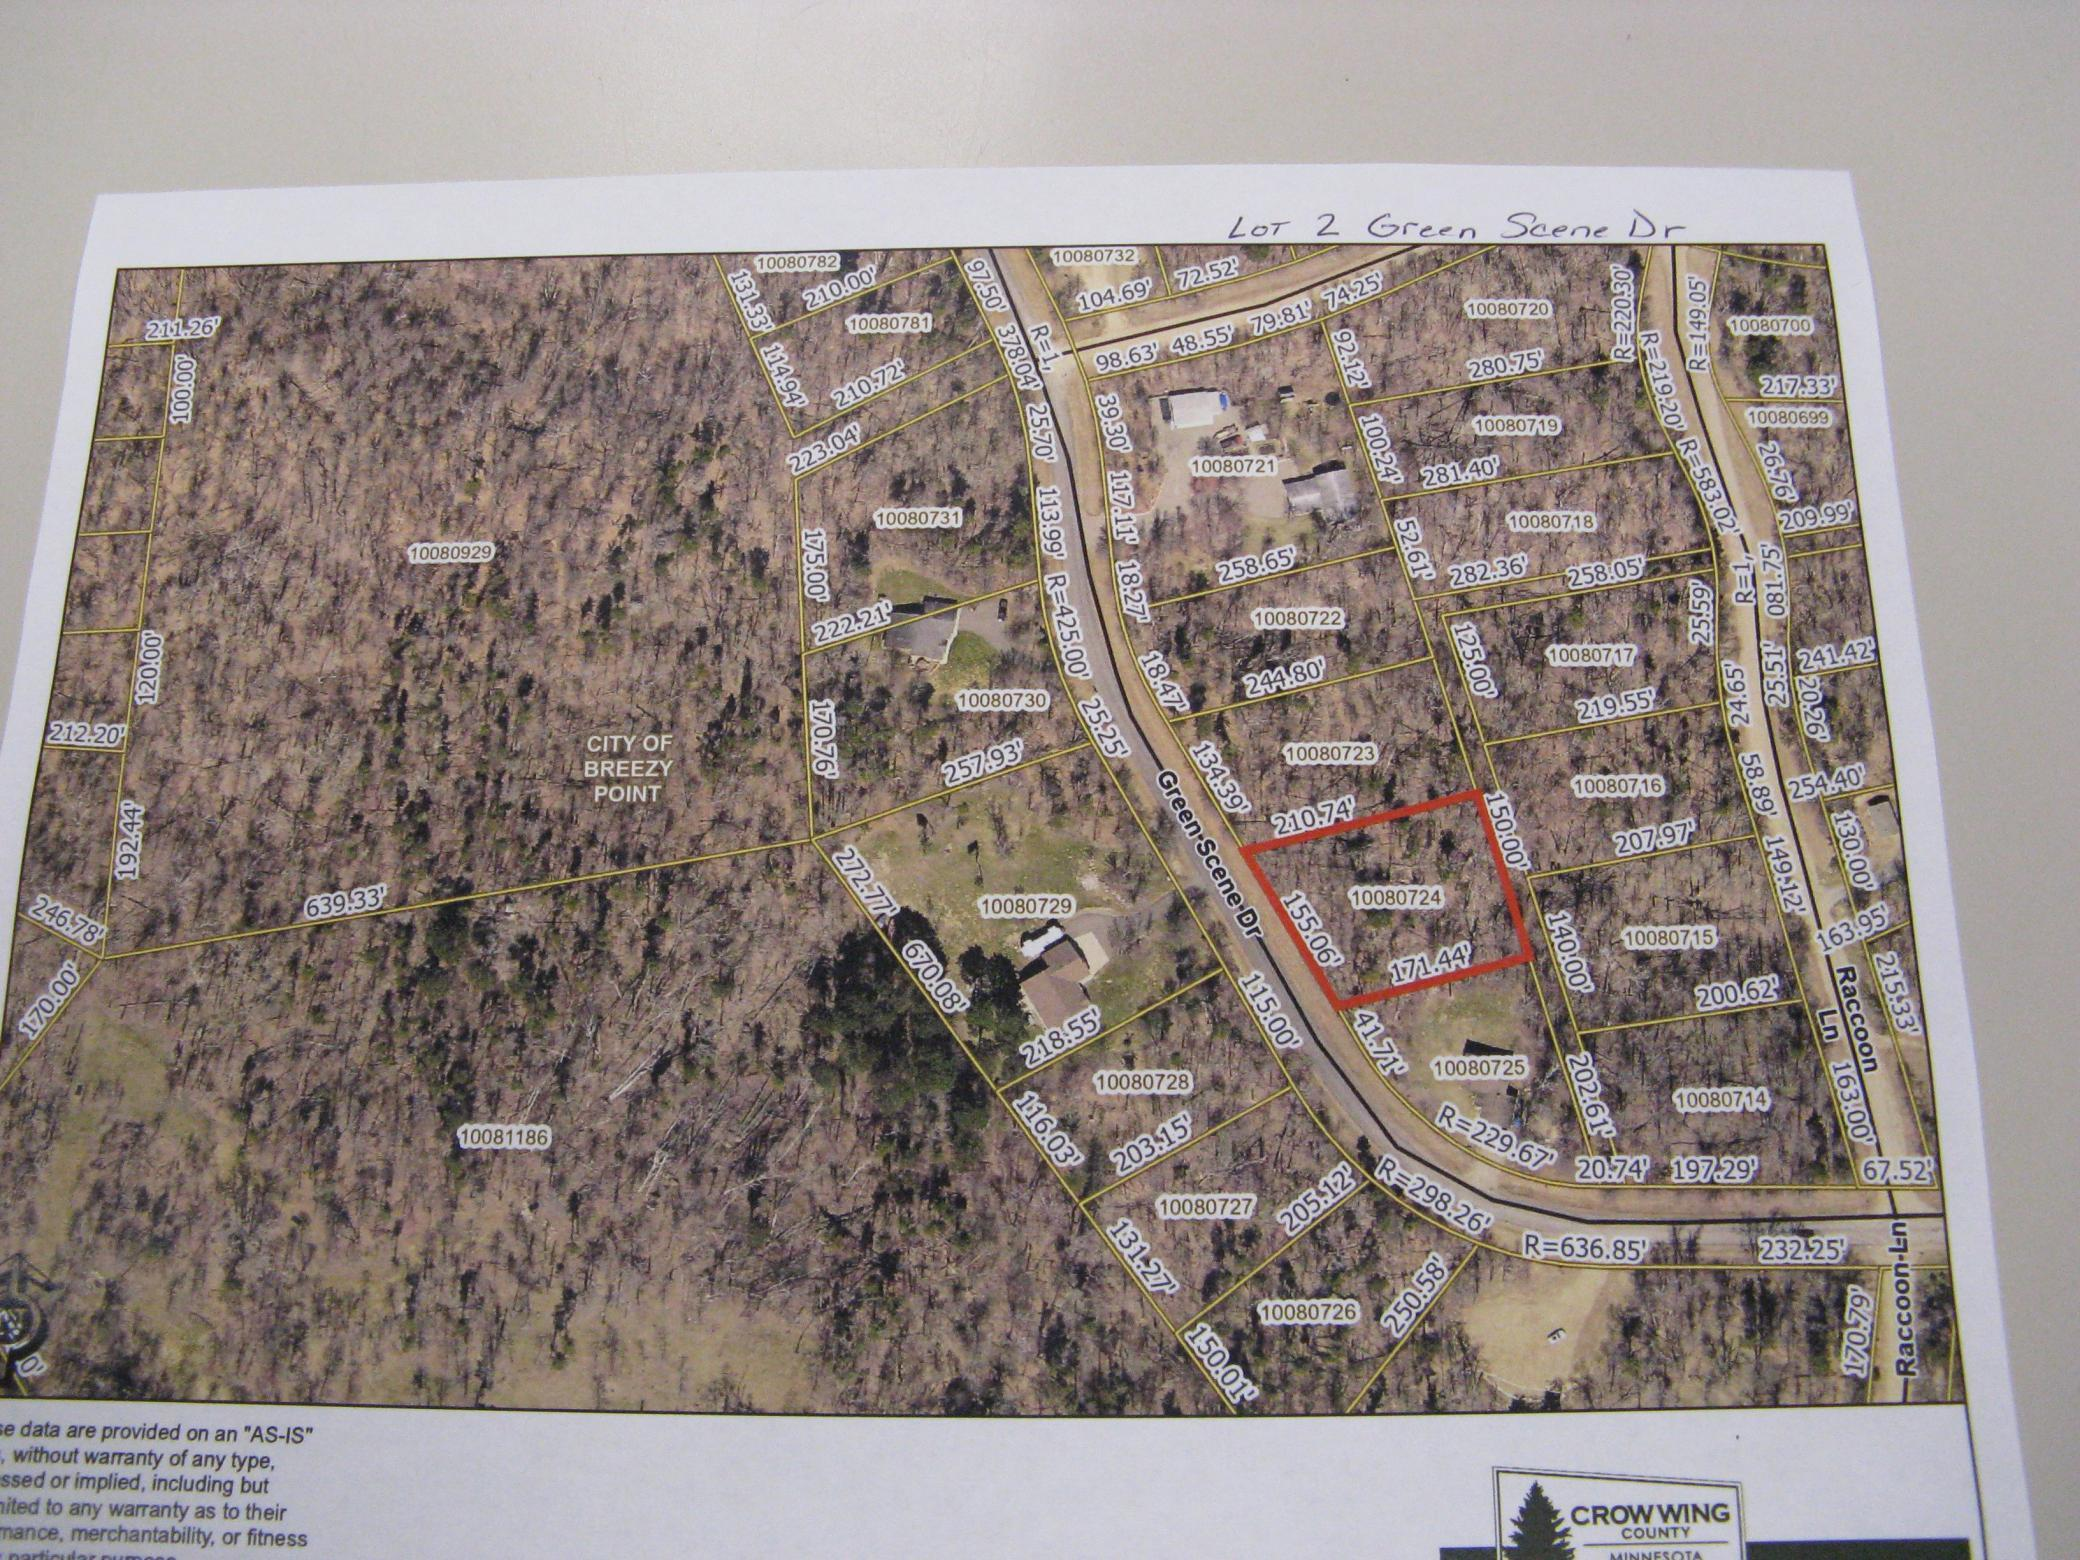 Great lot in Breezy Point to build your dream home. Close to Breezy Point Resort, restaurants, clinic, golf, schools.